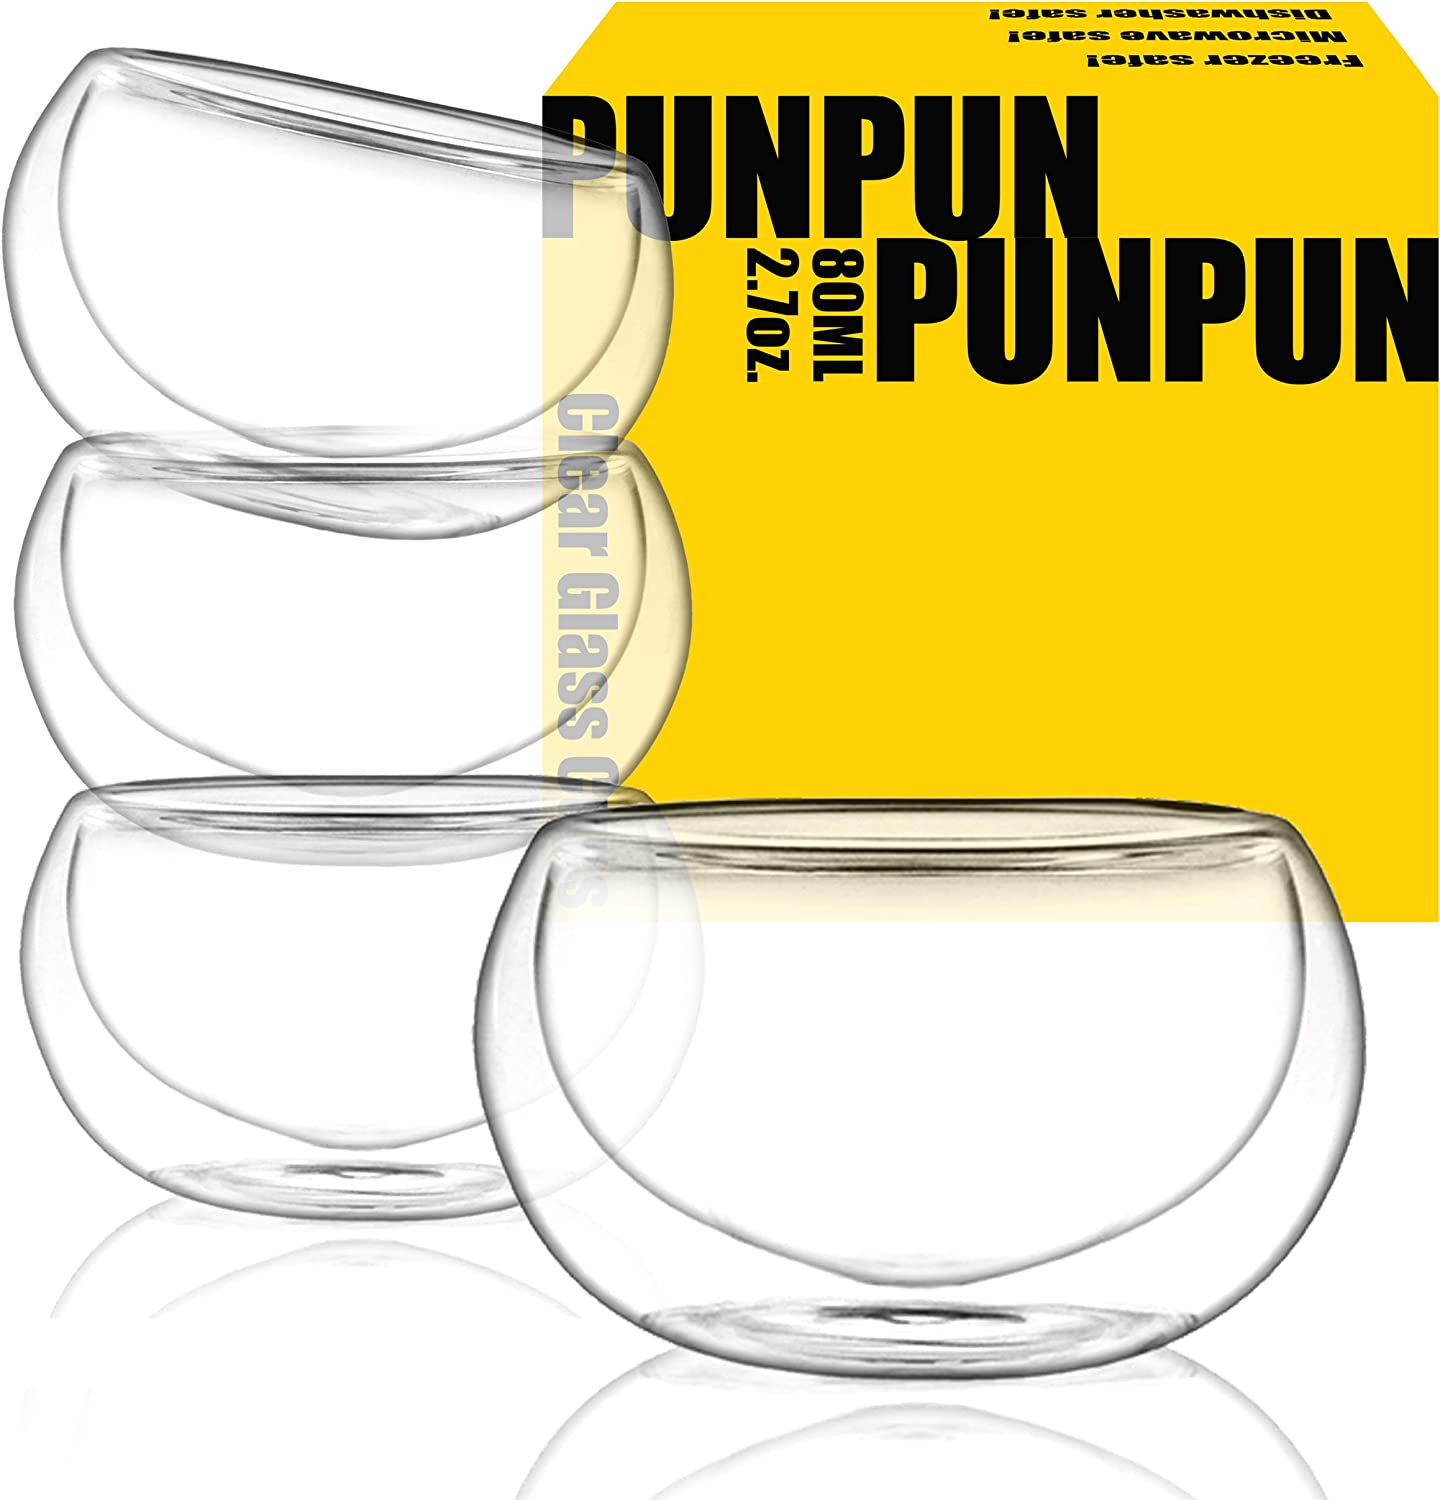 PunPun Tea cups Set of 4-Double Wall Borosilicate Glass-Espresso Cups Set-Heatproof Insulating-Teacups glass-2.7oz. 80ml Demitasse Gift Box-Hand Made-Lead free